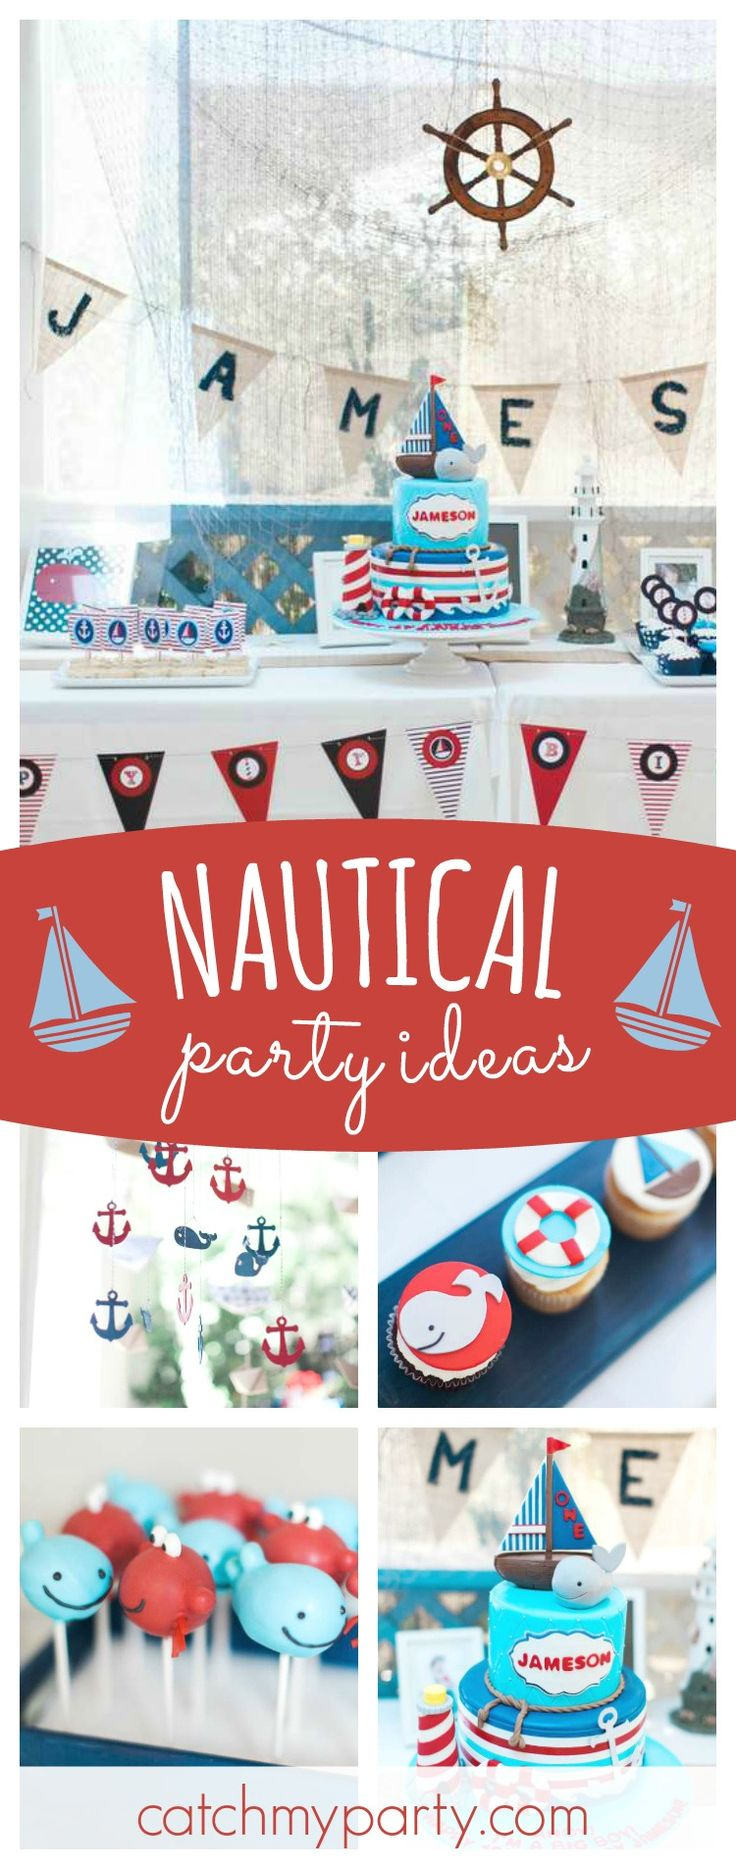 Don't miss this wonderful Nautical 1st birthday party. The cake pops are adorable!! See more party ideas and share yours at CatchMyParty.com